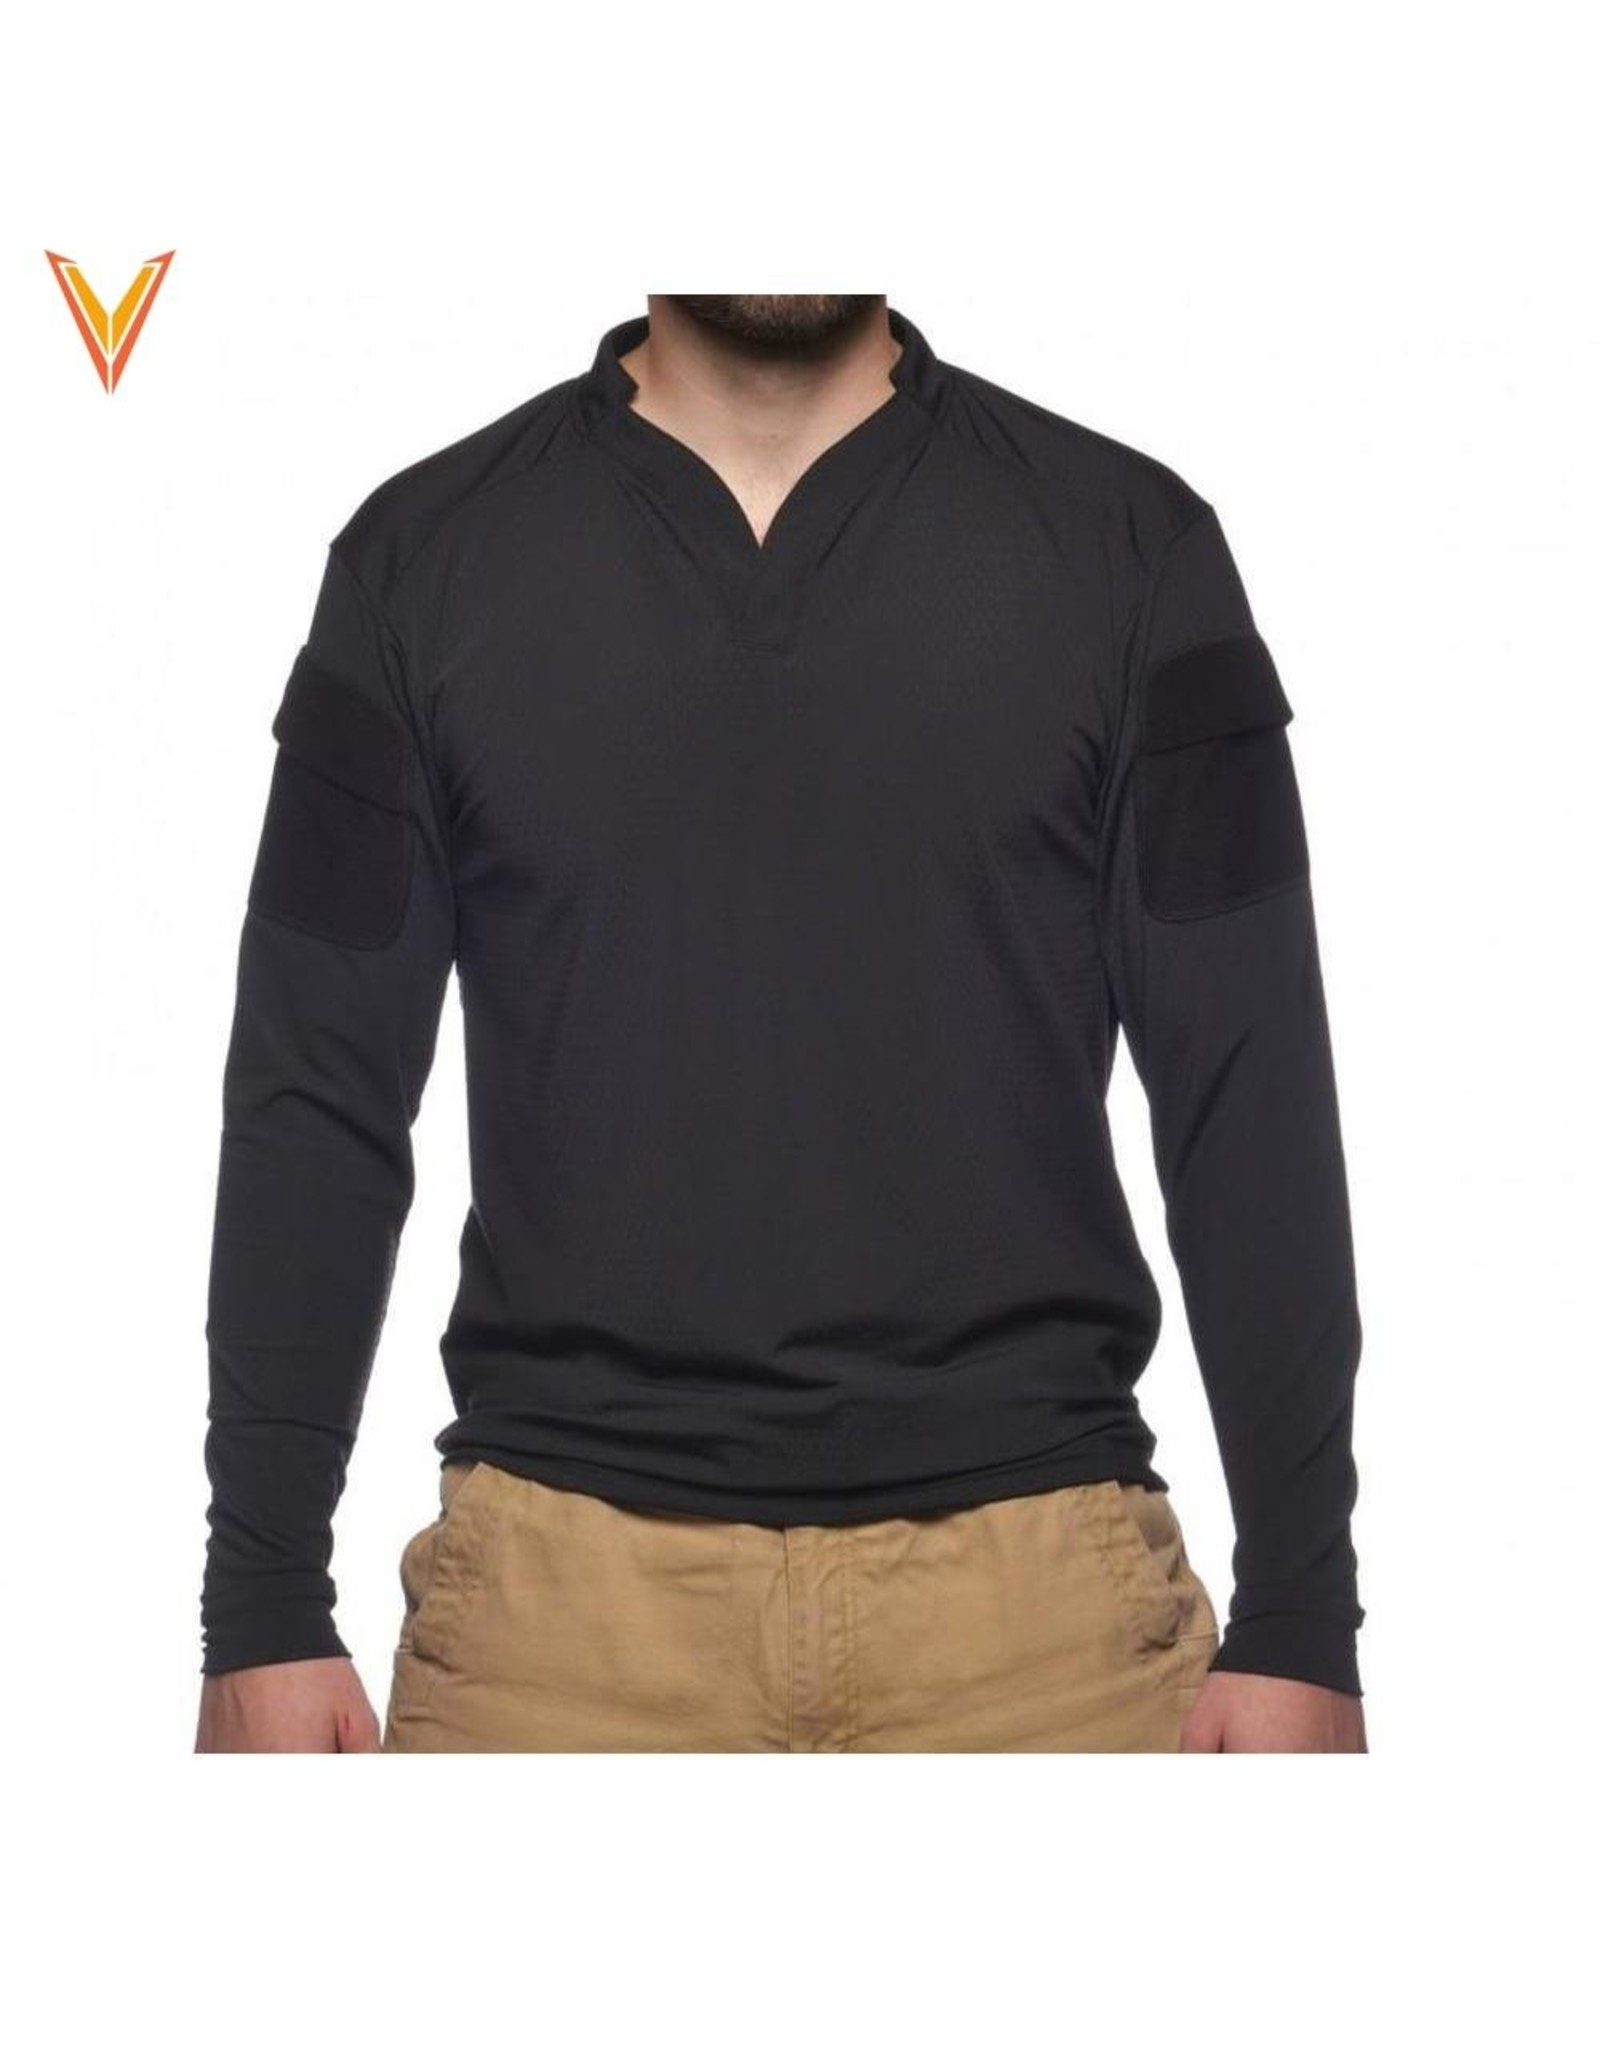 VELOCITY SYSTEMS VELOCITY SYSTEMS BOSS RUGBY LONG SLEEVE SHIRT